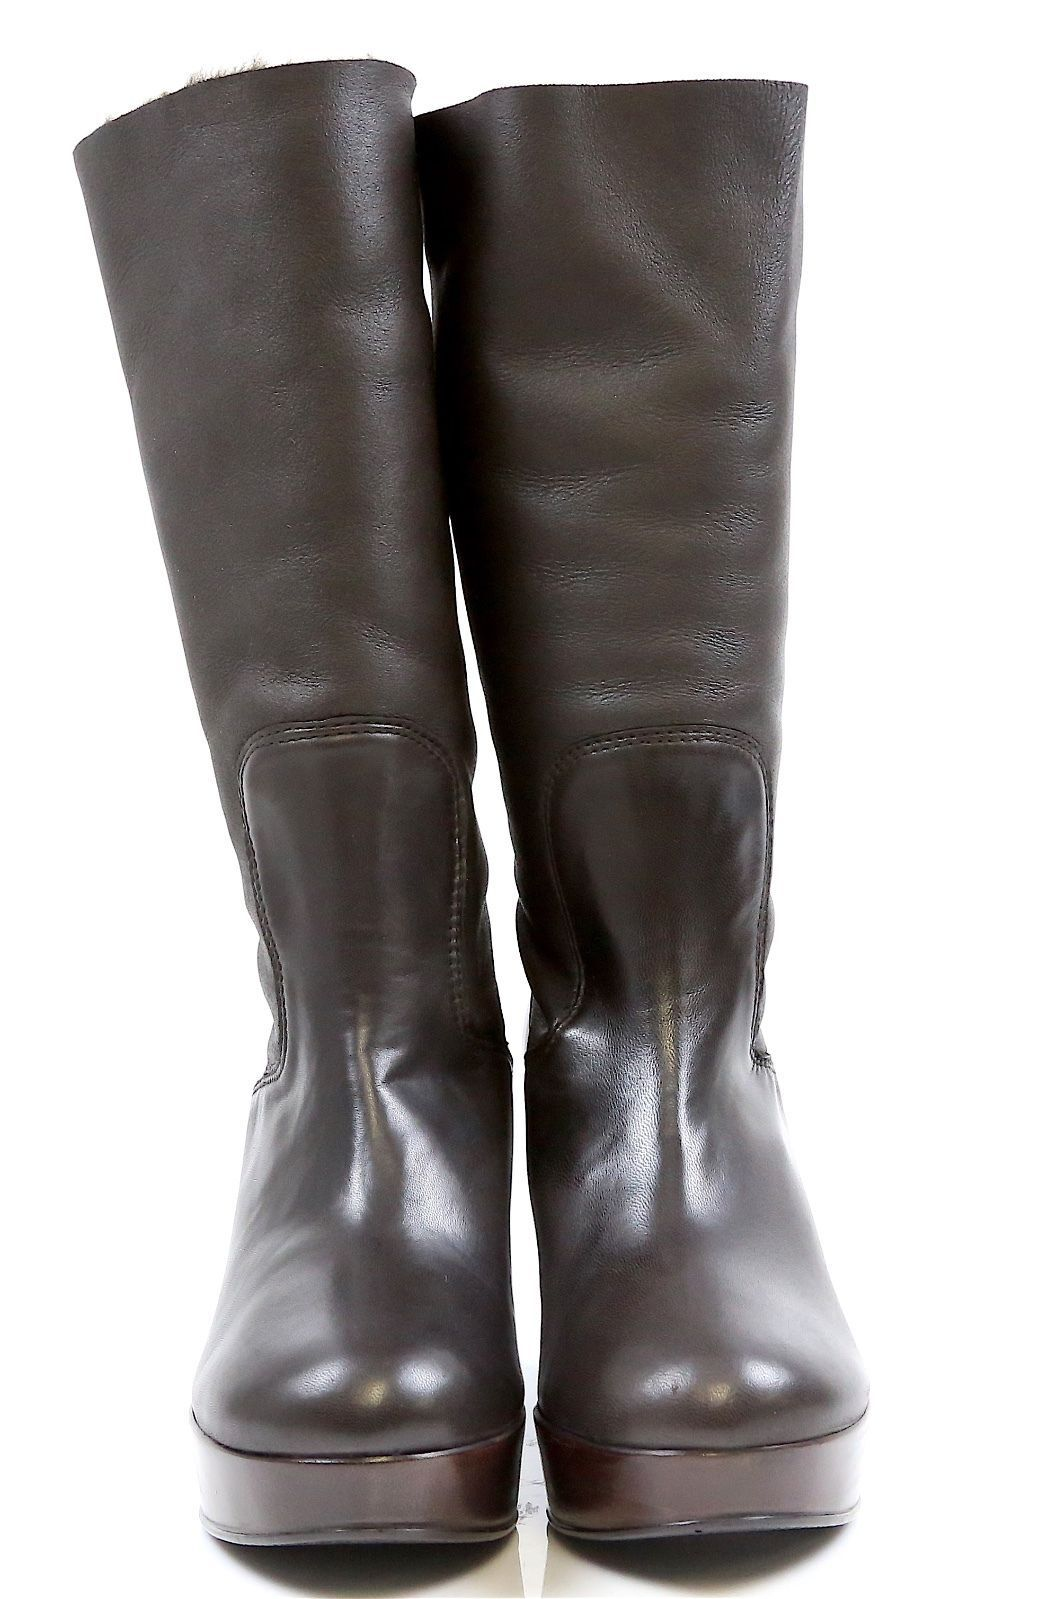 New! Stuart Weitzman 9370 Snowy Cola Nappa Brown Wedge Boots Size Size Boots 10 B . db90af